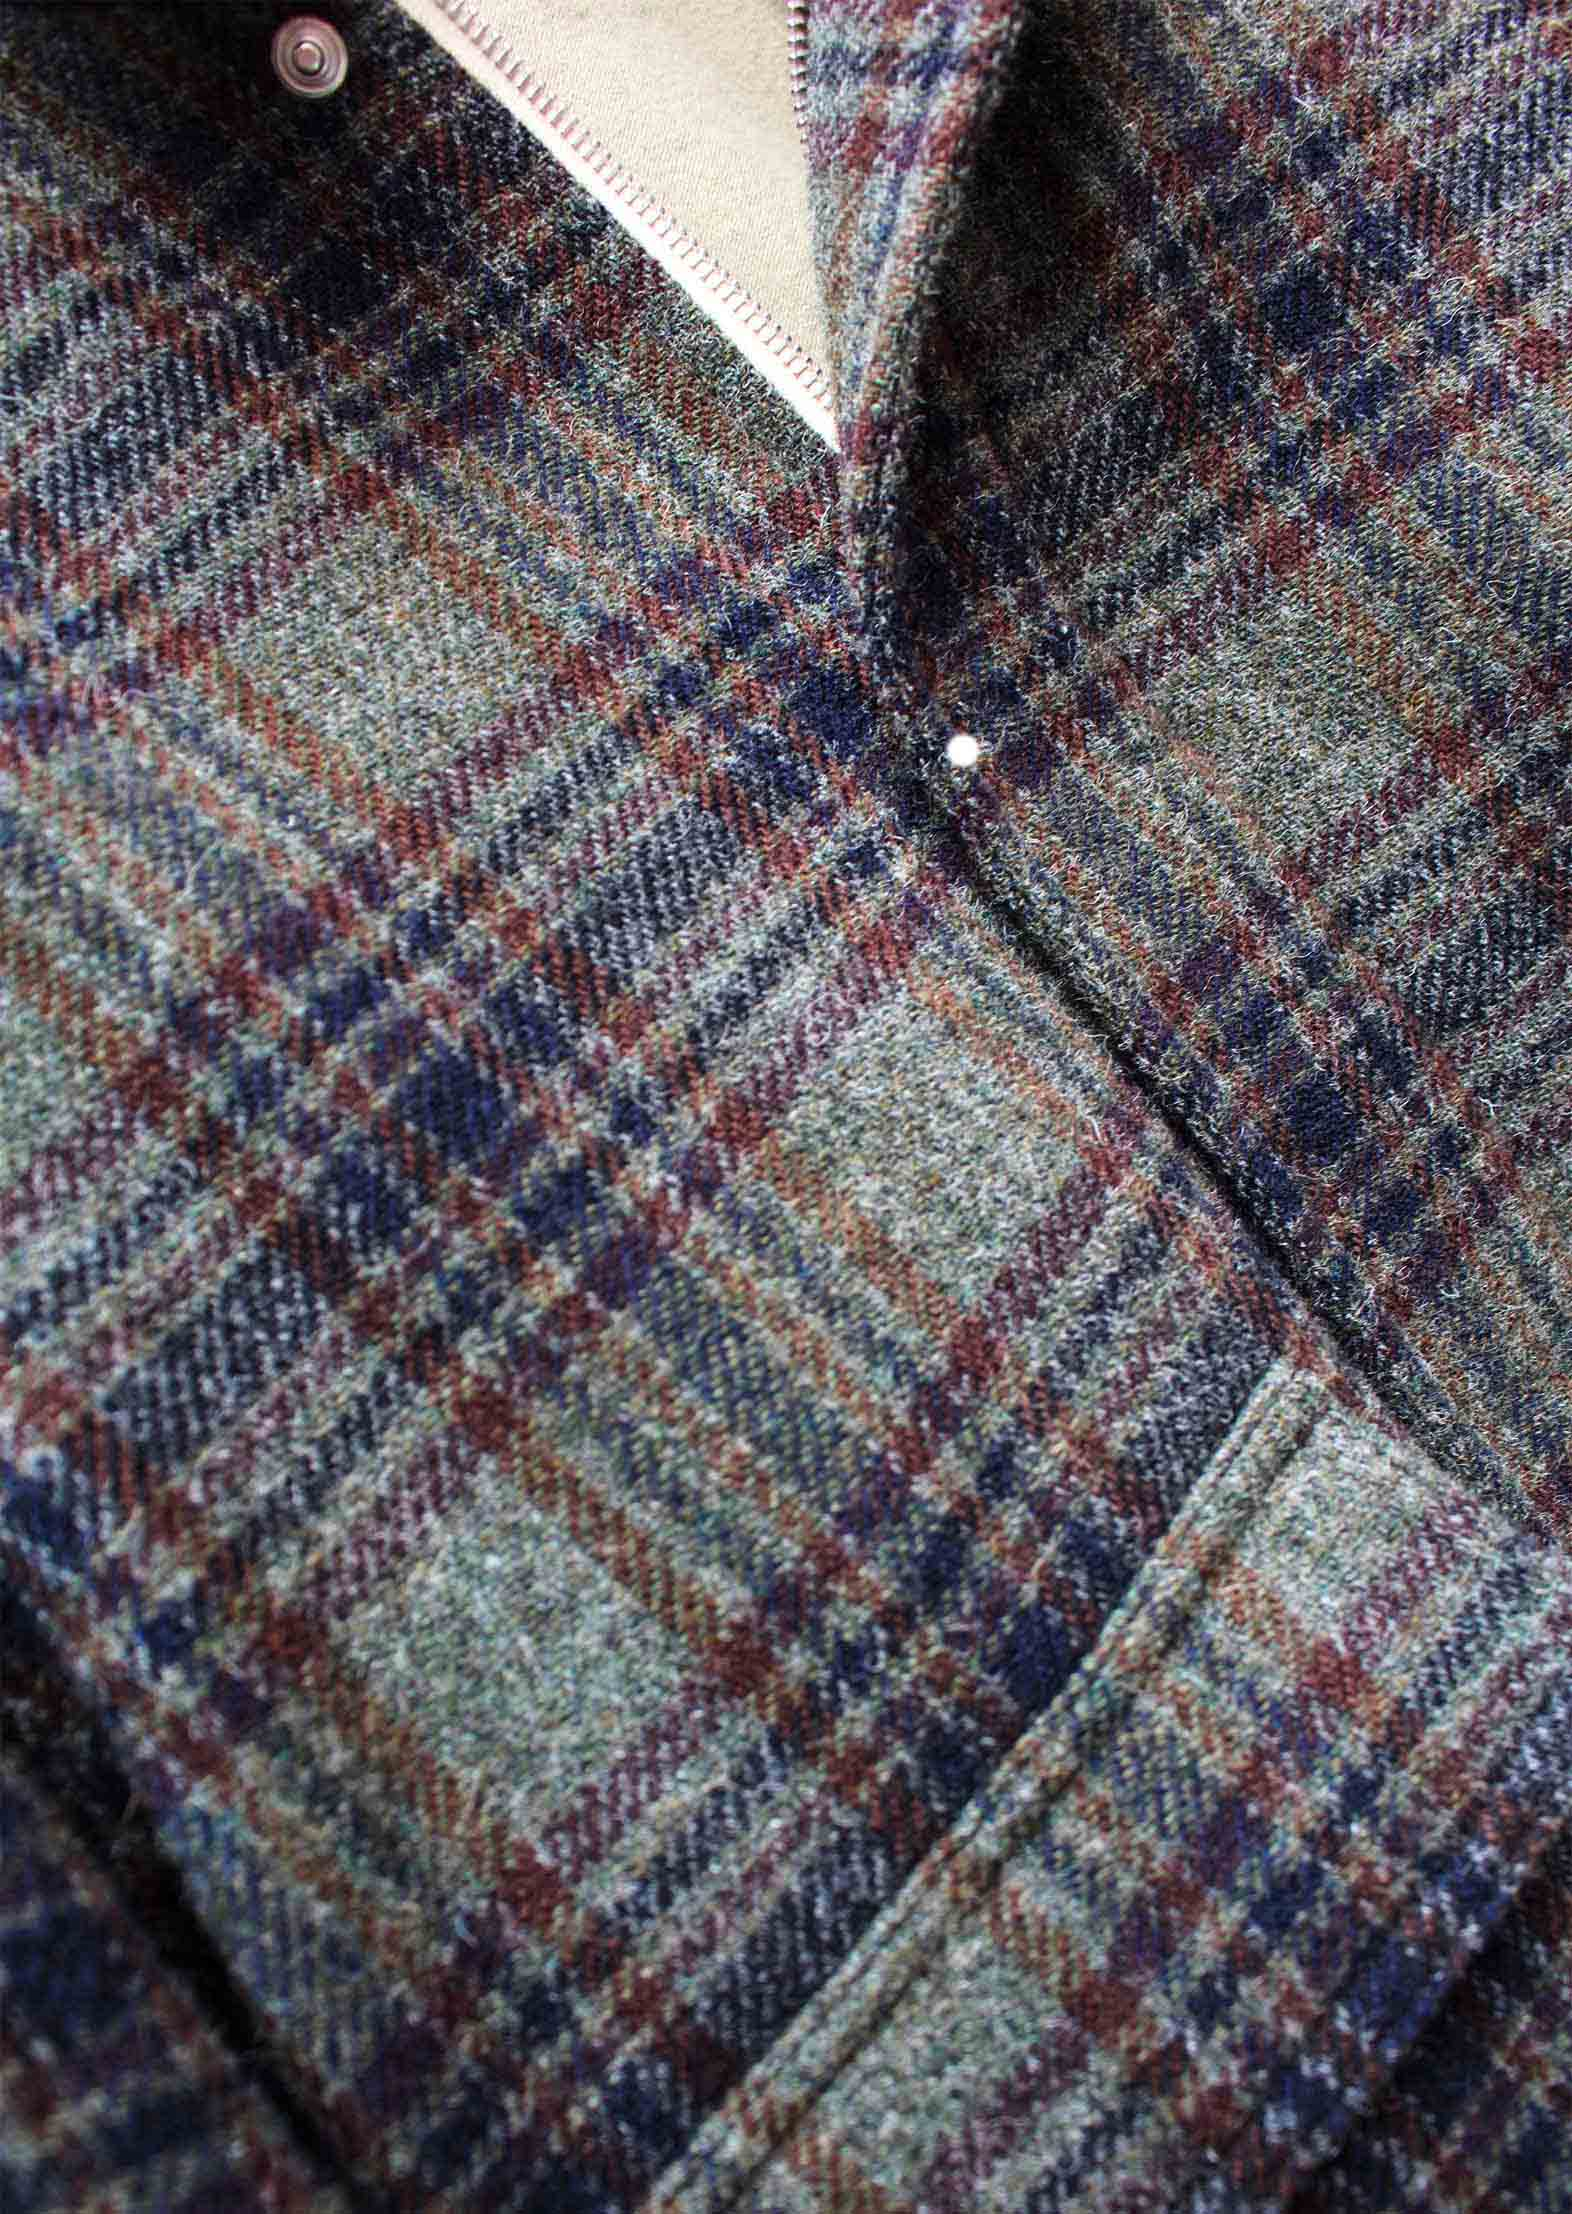 Aviator jacket - Italian brushed wool tweed - Green plaid